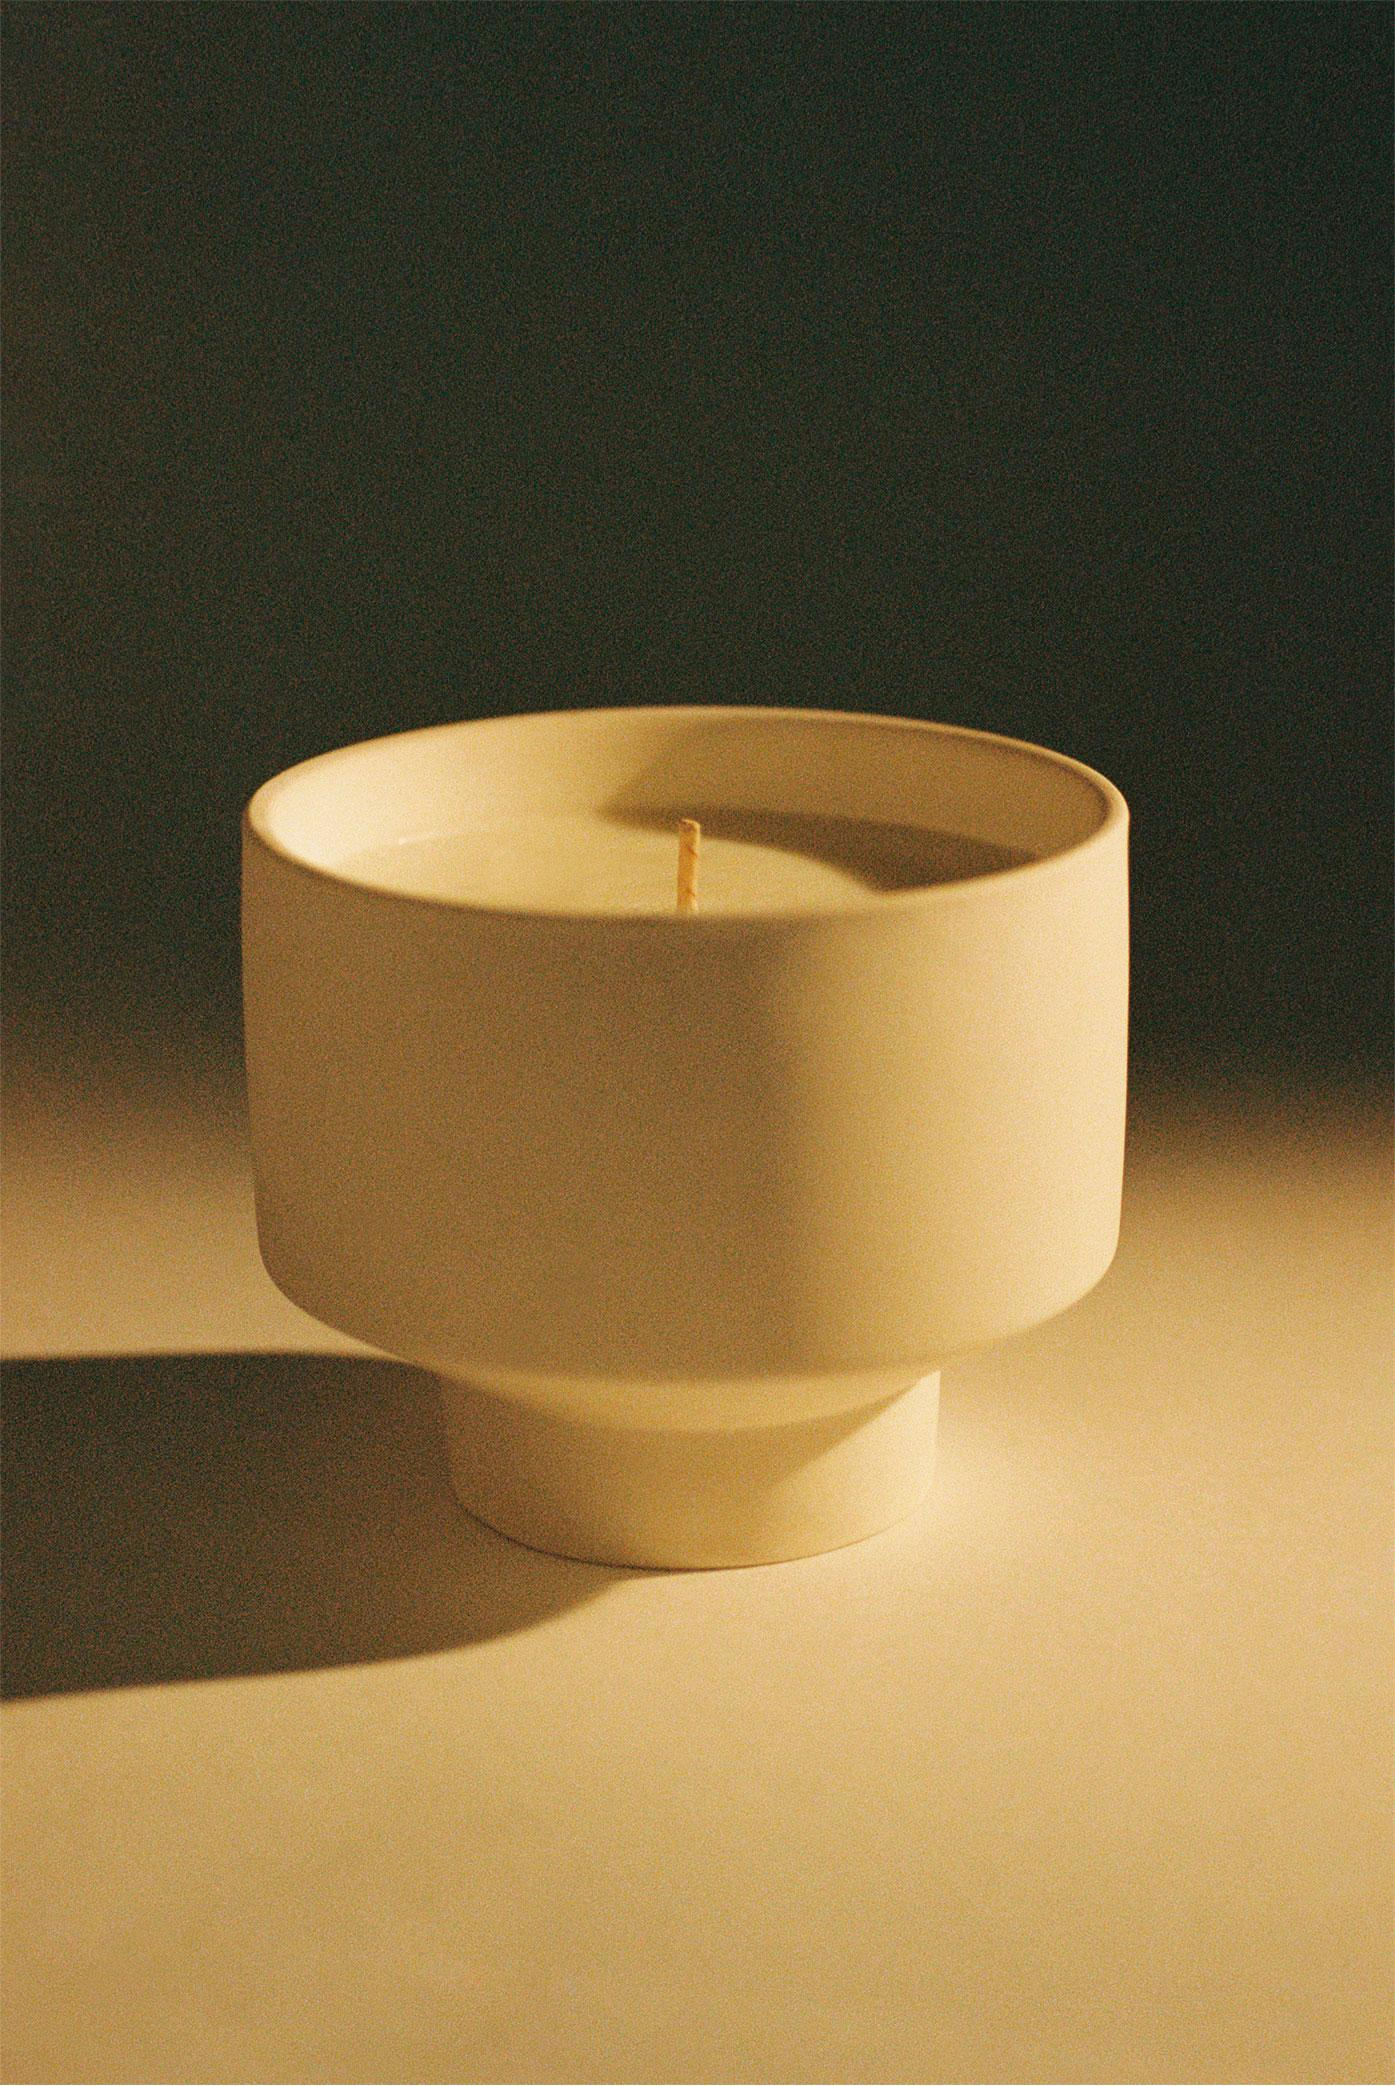 Uniform fragrance candle in white circular holder against black background